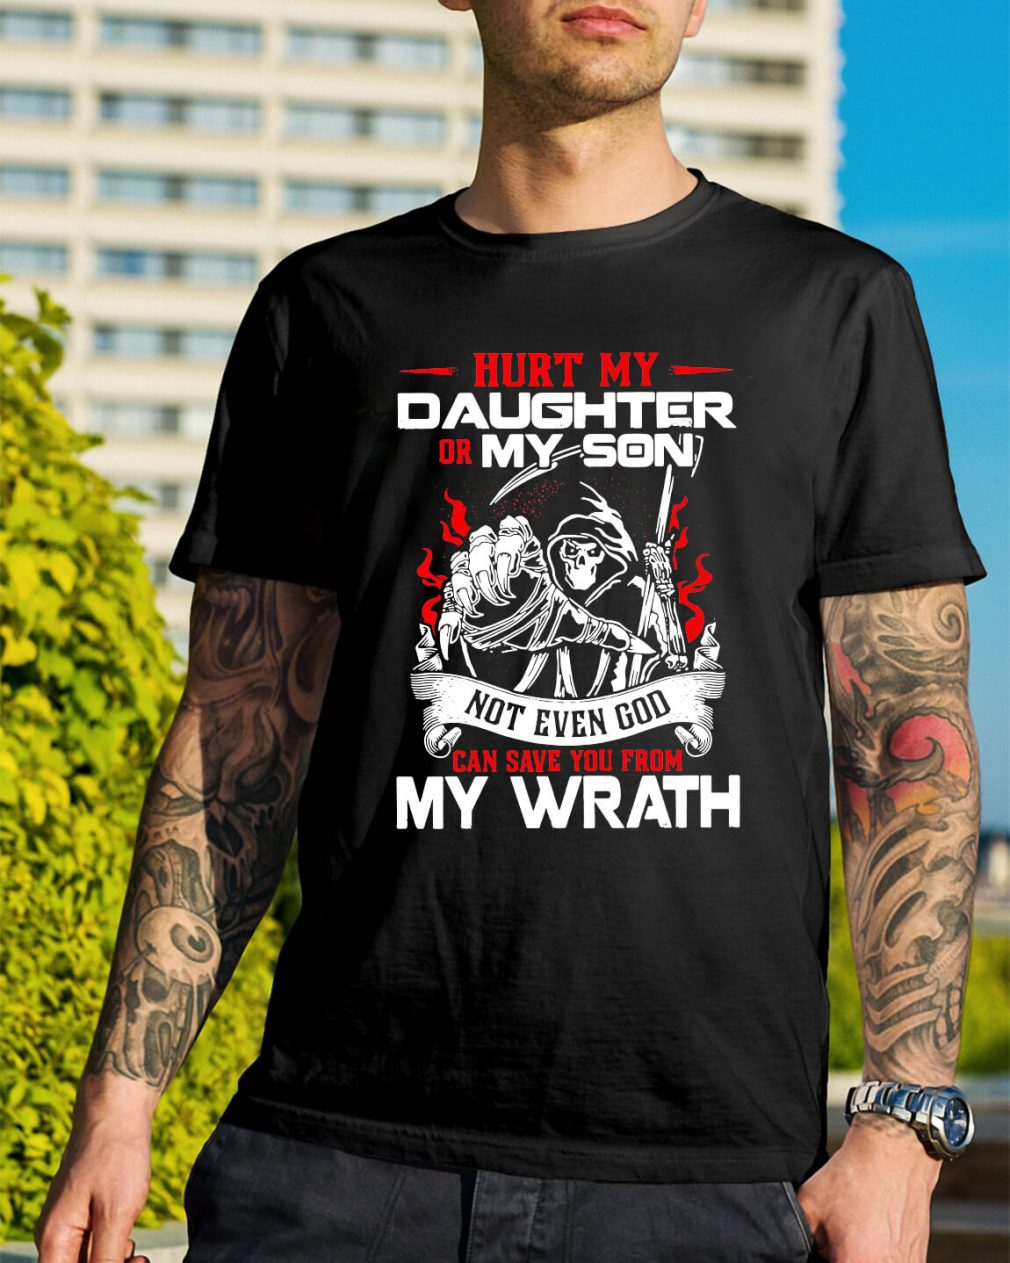 Hurt my daughter or my son not even God shirt